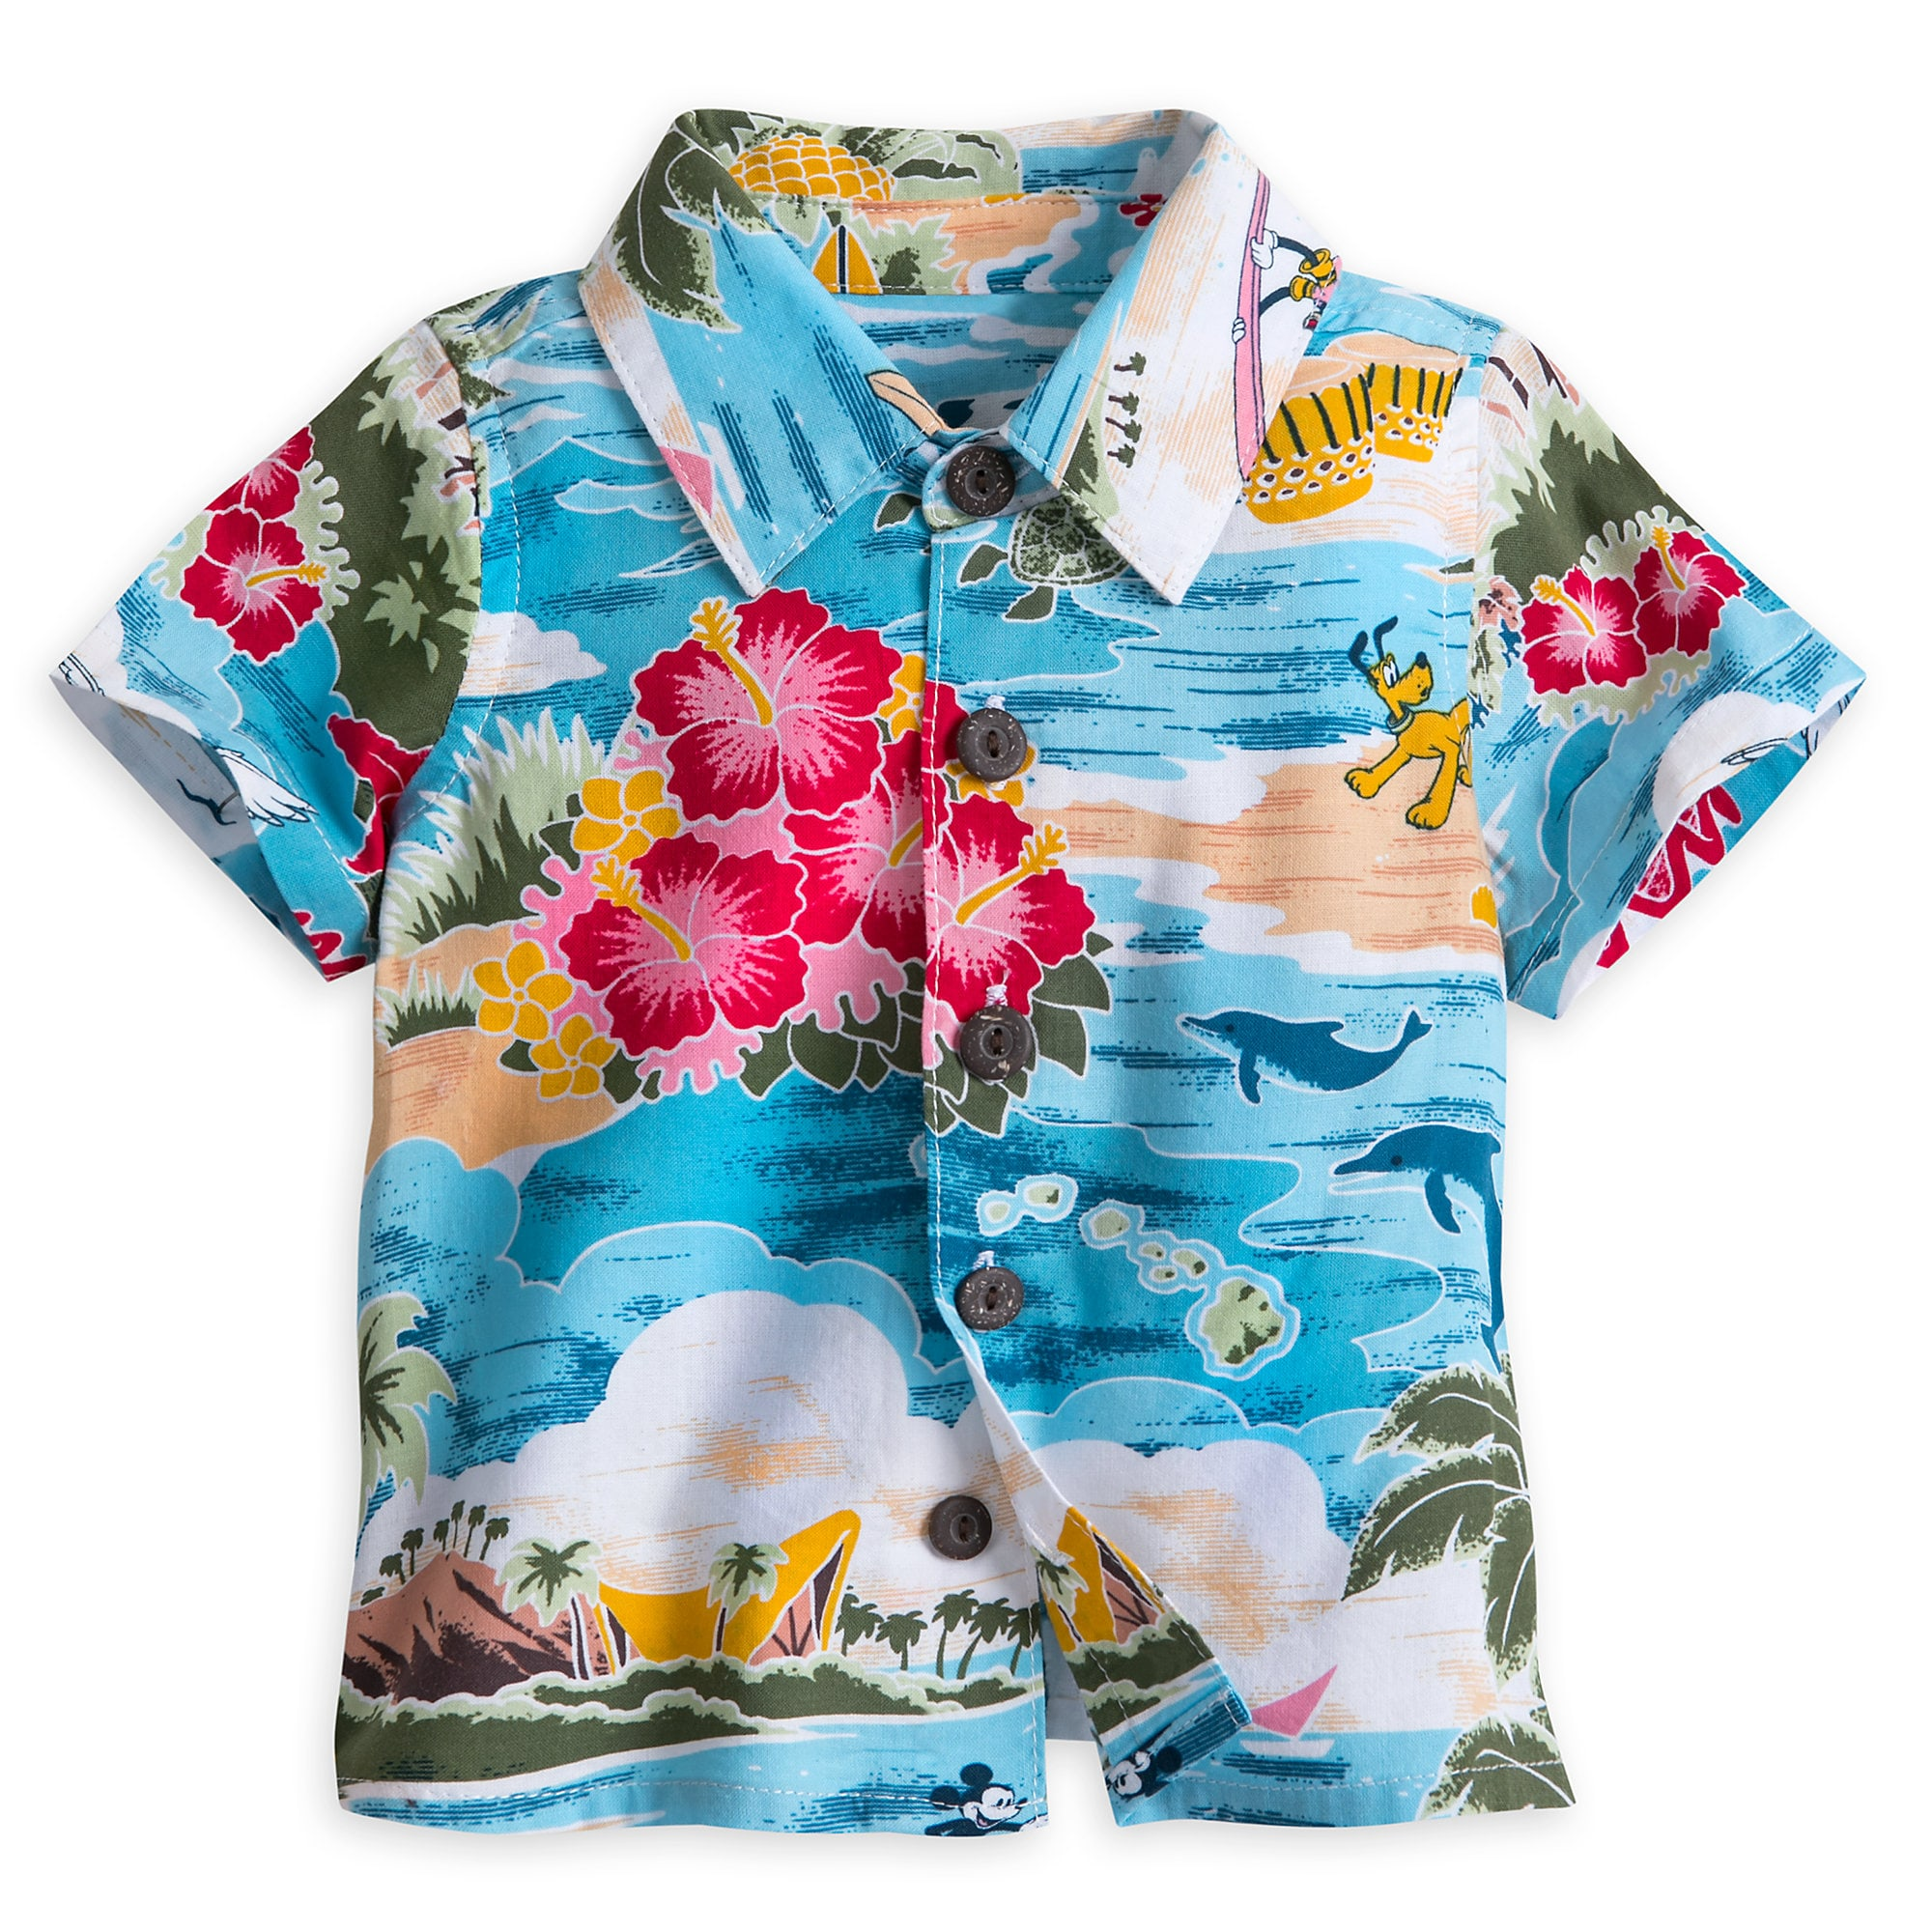 b305abe5 Mickey Mouse and Friends Hawaiian Shirt for Baby   shopDisney